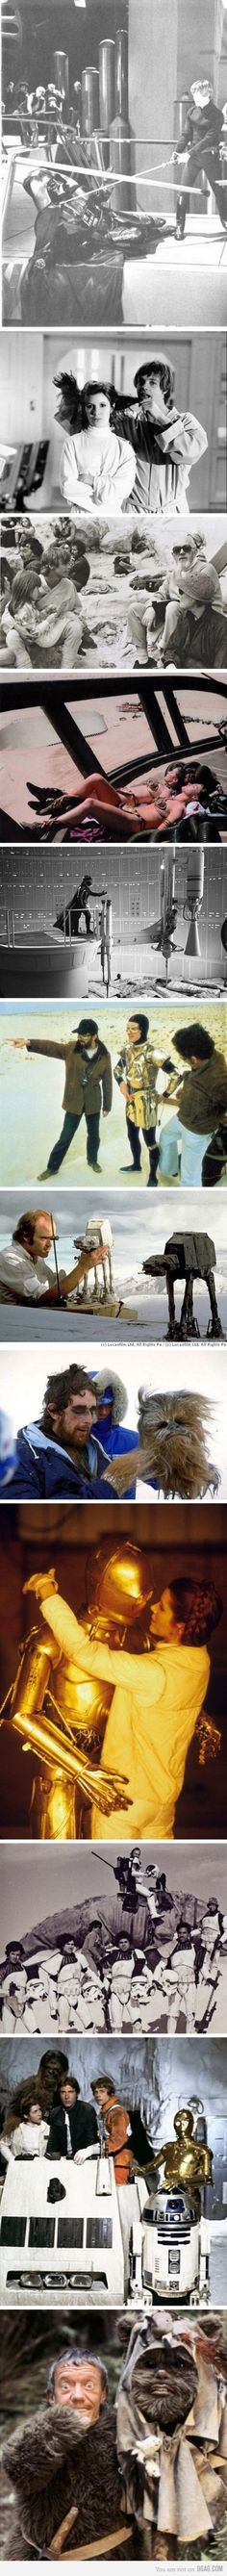 Star Wars Outtakes hahah